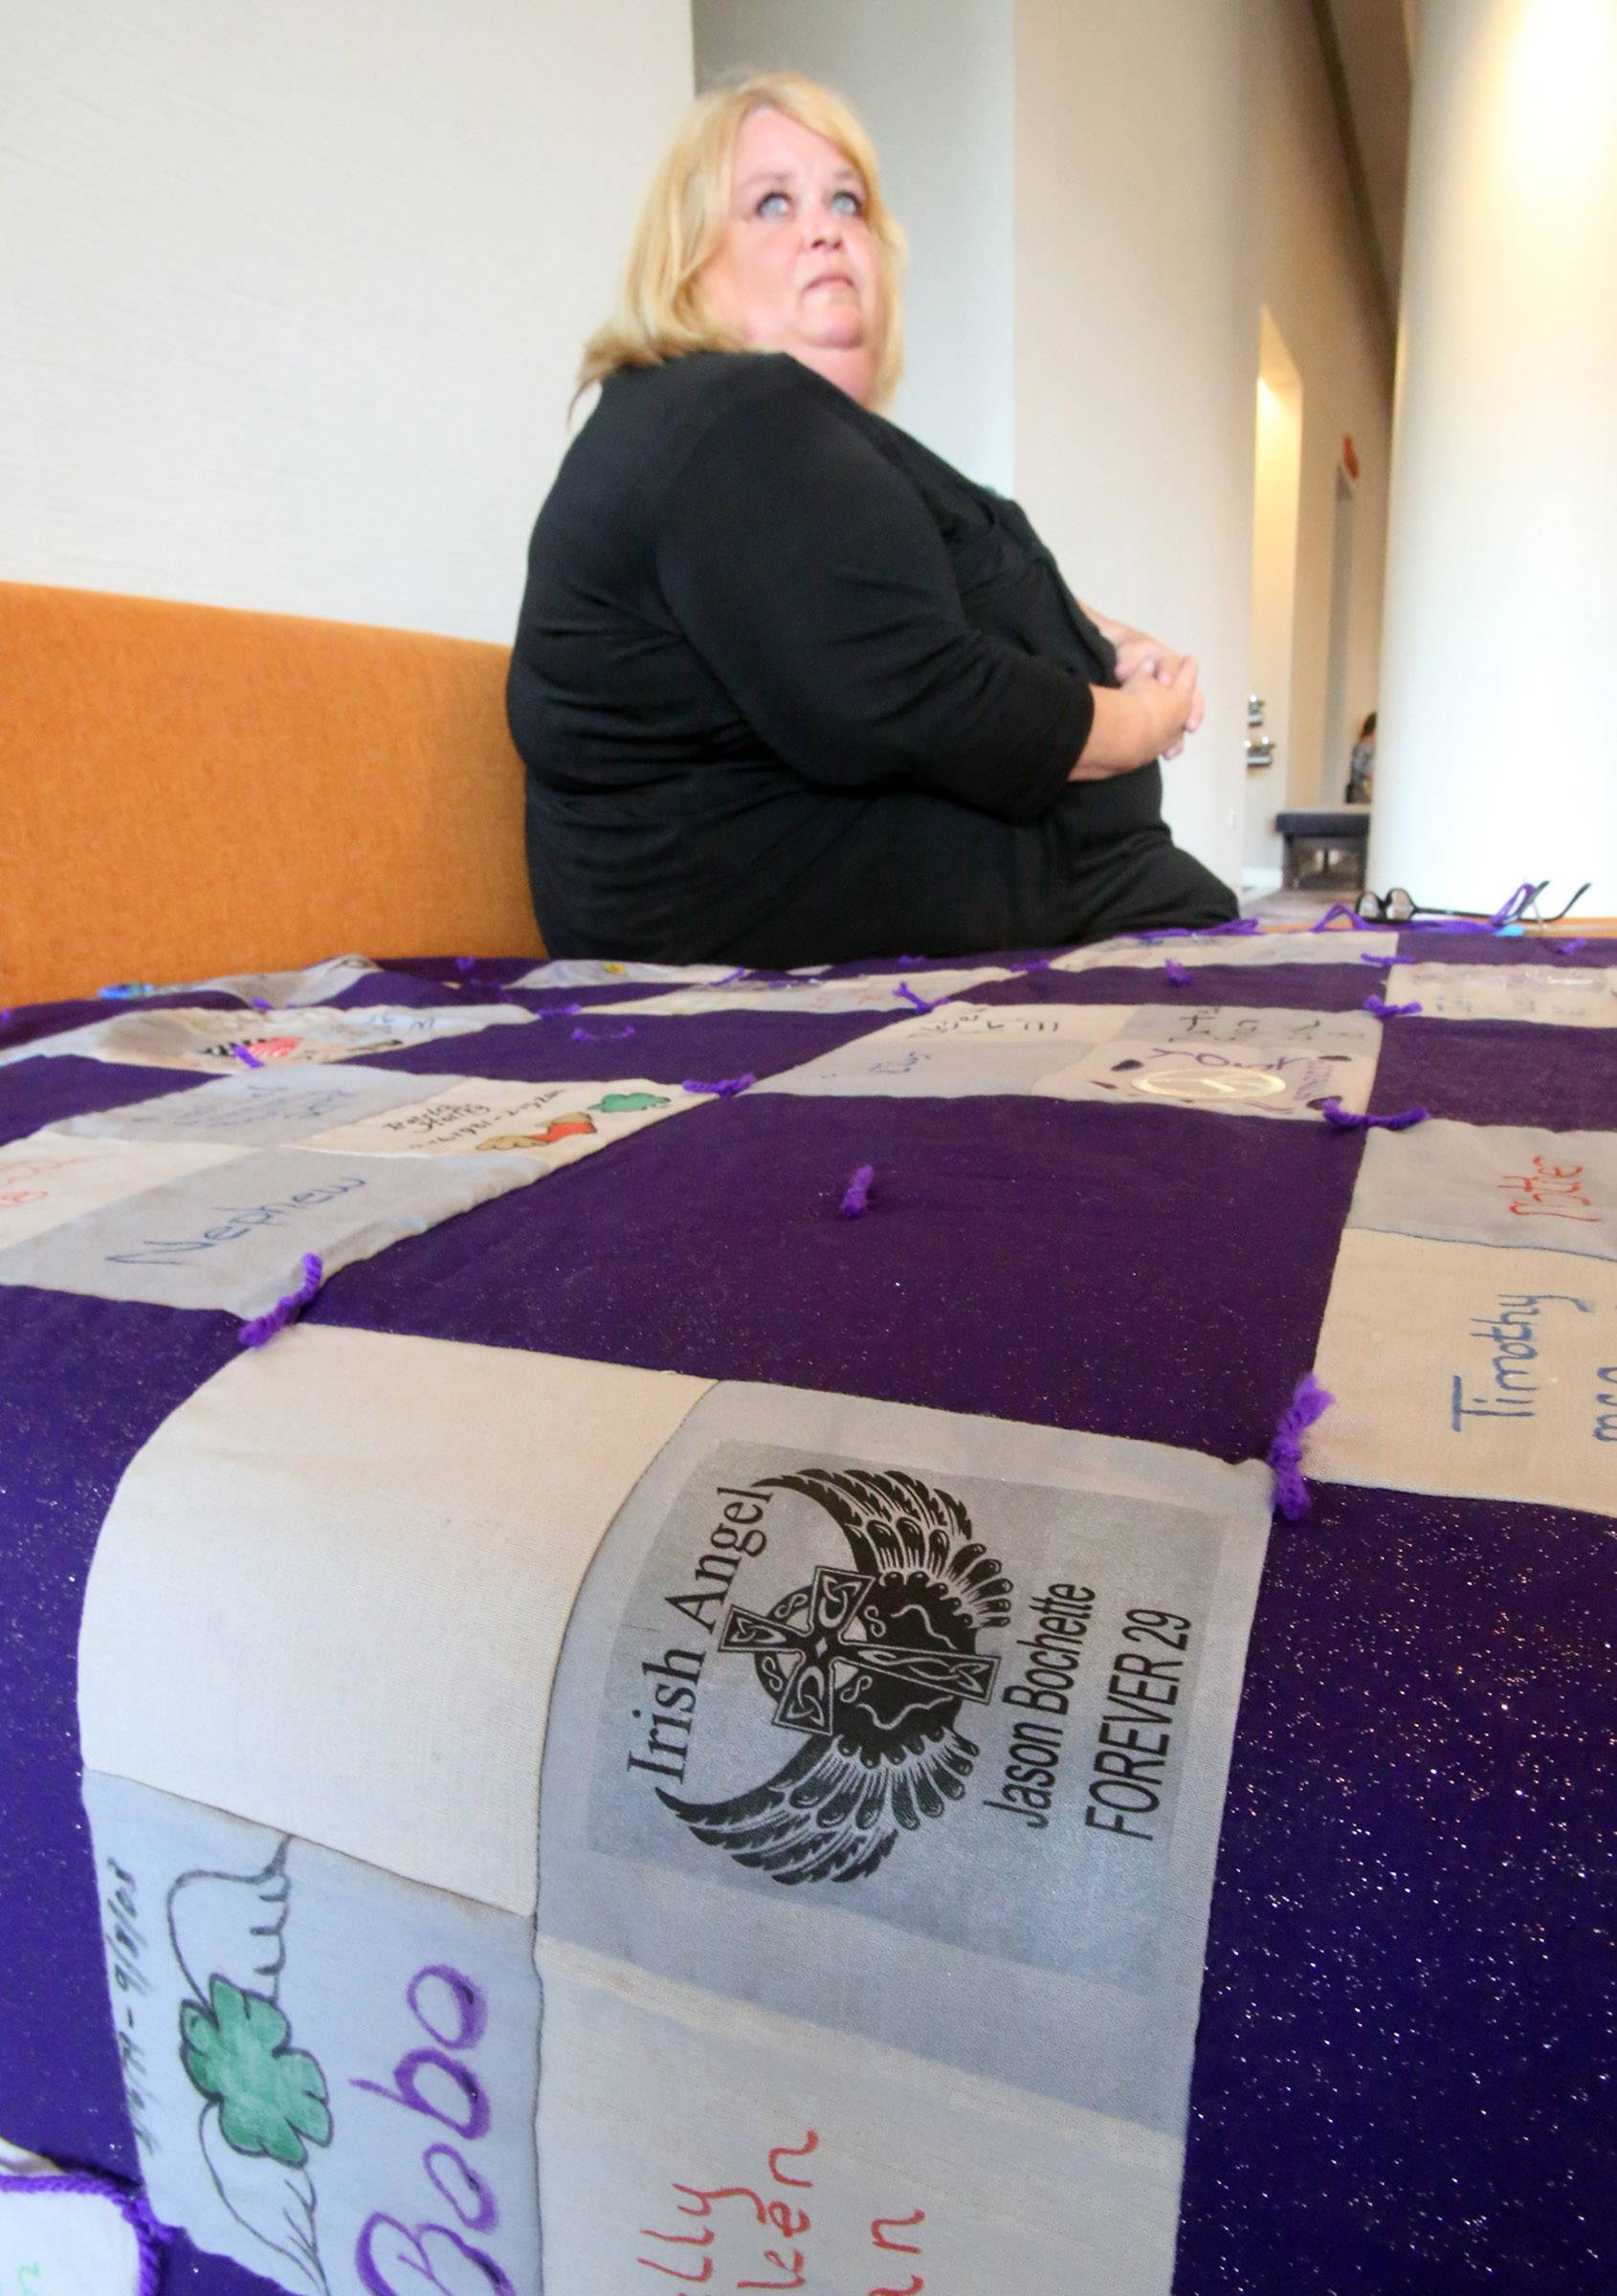 Terri Dudar of Carpentersville is a founder of a group raising money Saturday to provide heroin addicts and their loved ones with the drug naloxone, which can prevent overdose deaths. Last year, she made a quilt memorializing suburban overdose victims, including her son.